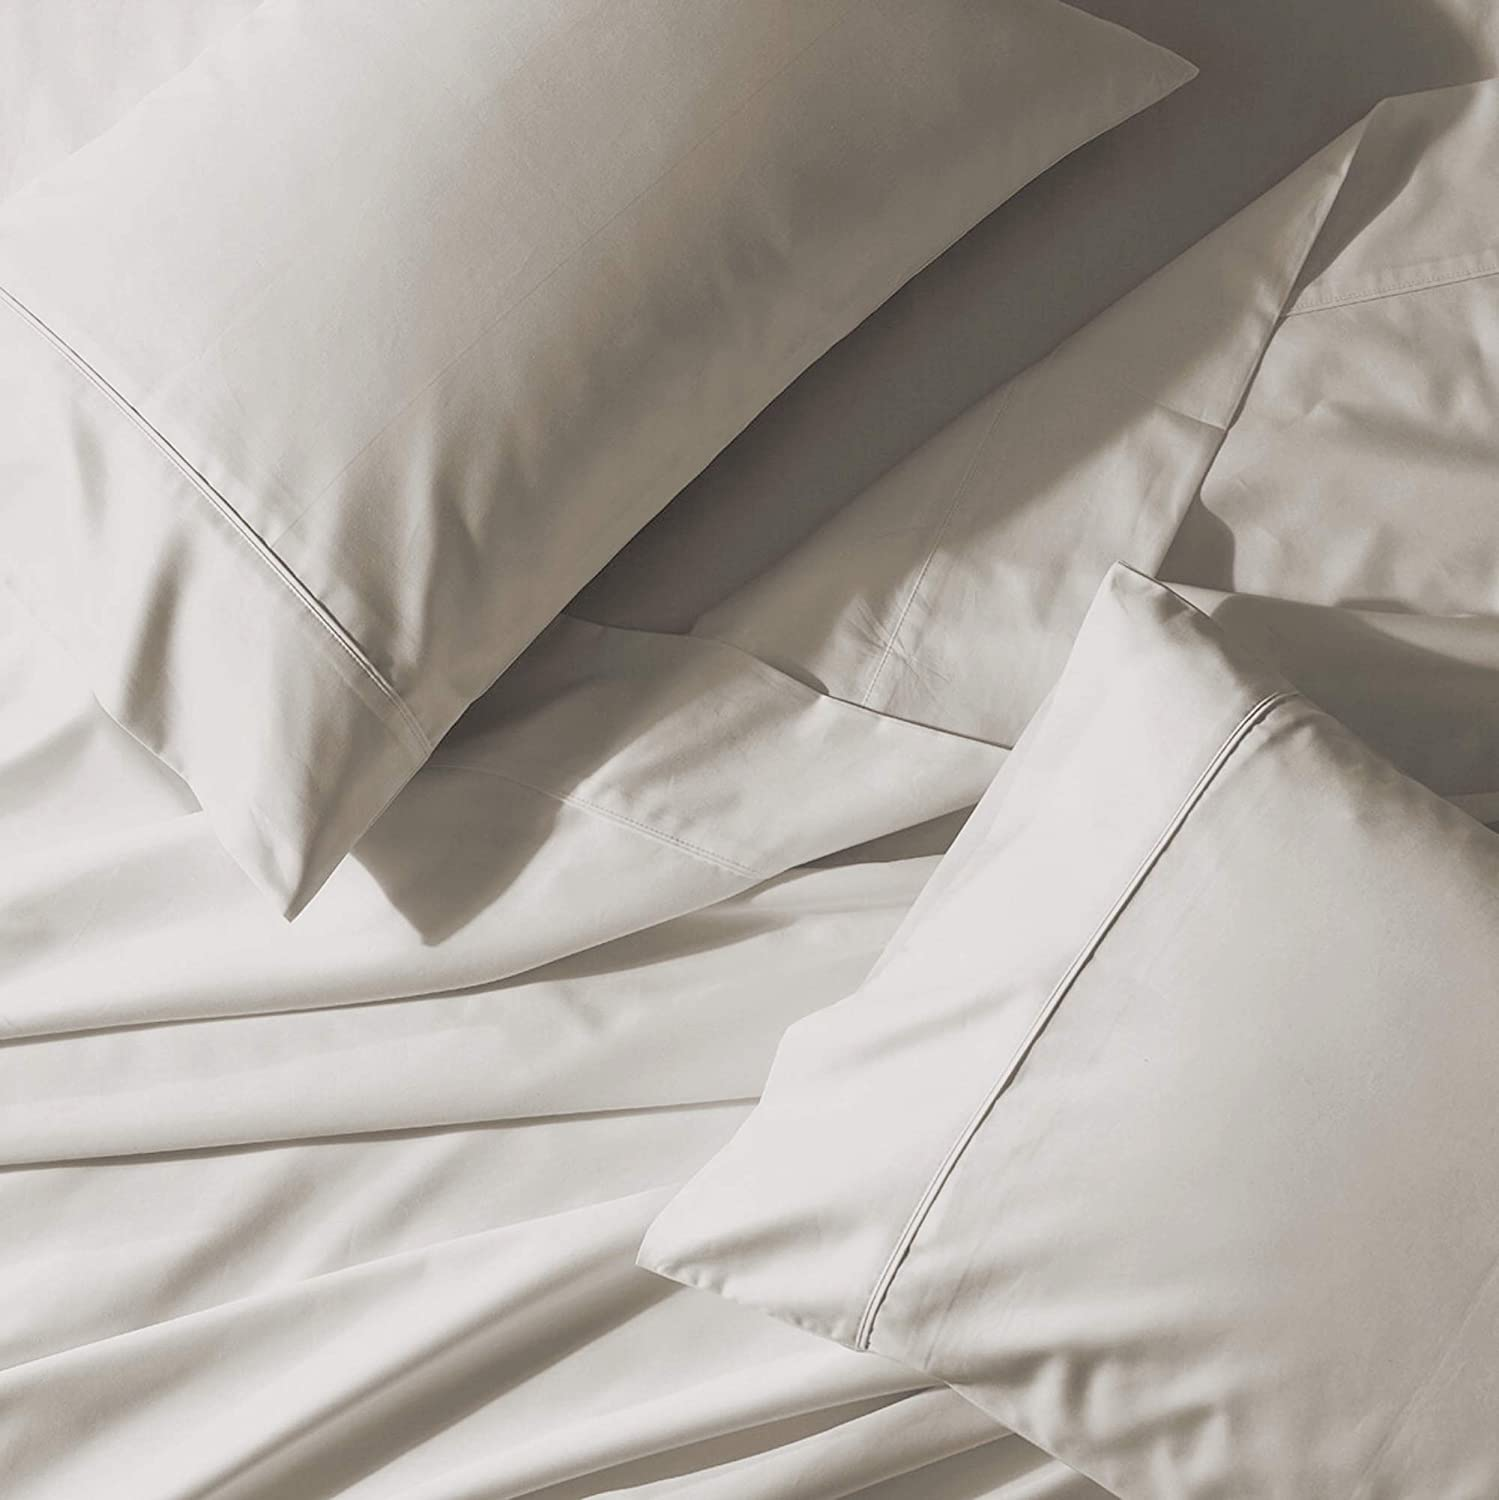 Fits Mattress Upto 17 Deep Breathable 100/% Organic Cotton Pure White Twin-Sheets Set GOTS Certified 3-Piece Pure Organic Cotton Long Staple Percale Weave Ultra Soft Best Bedding Sheets for Bed